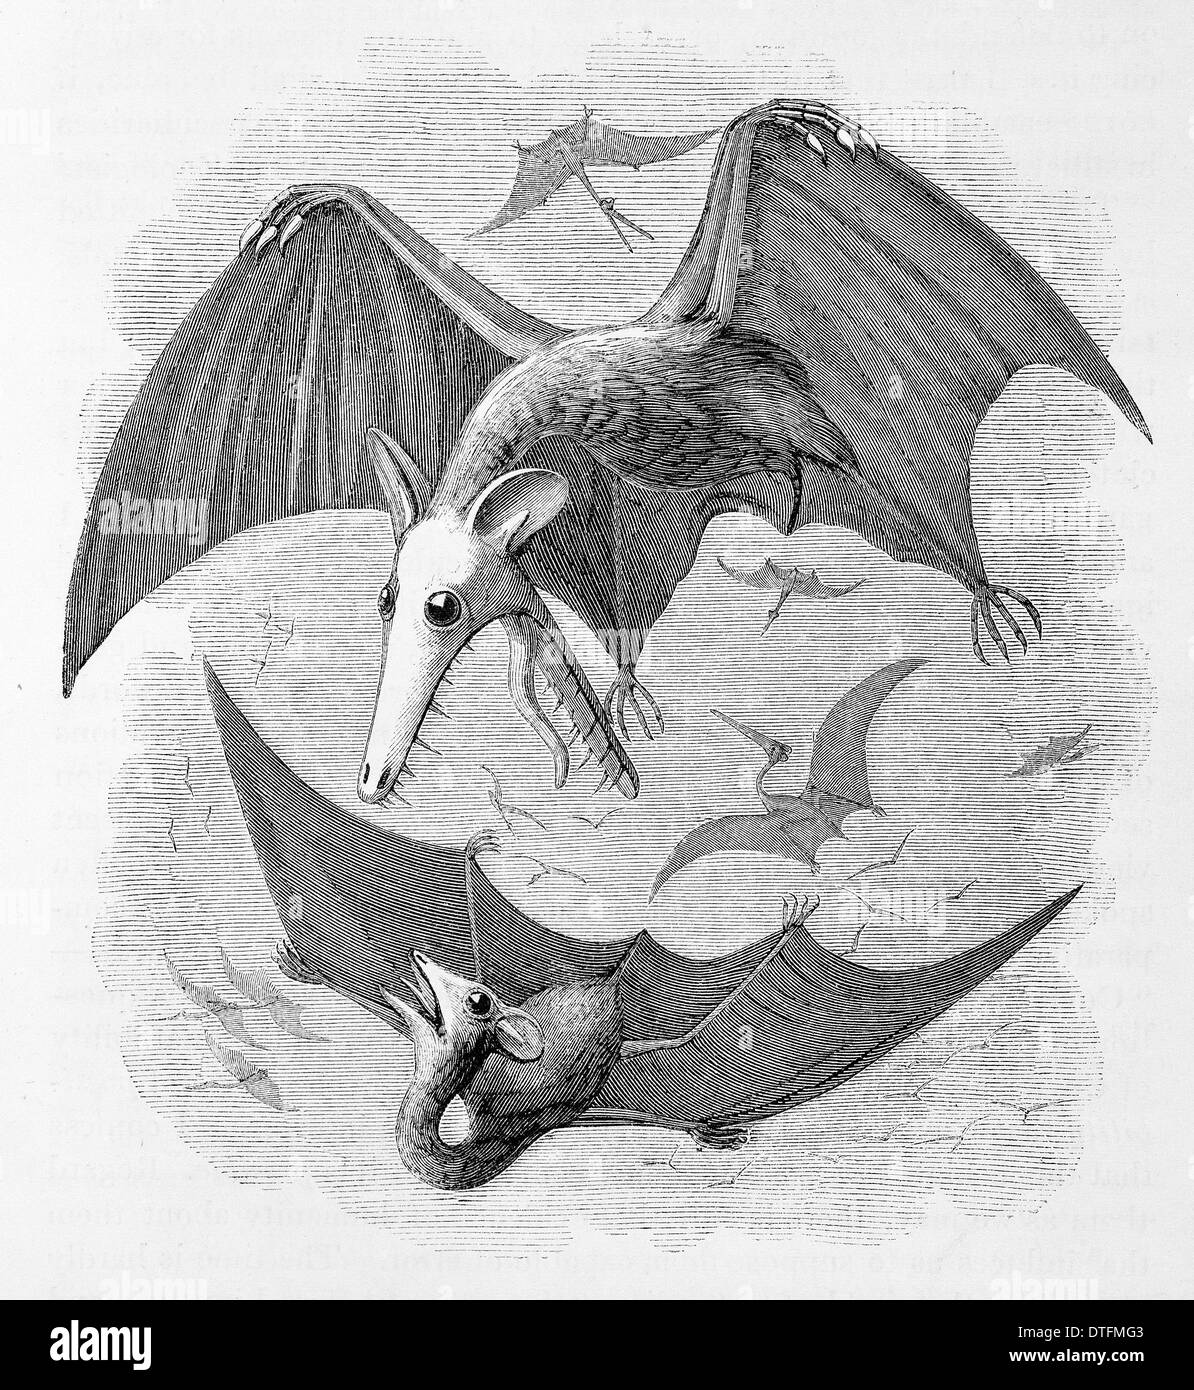 Pterodactyls considered as marsupial bats - Stock Image